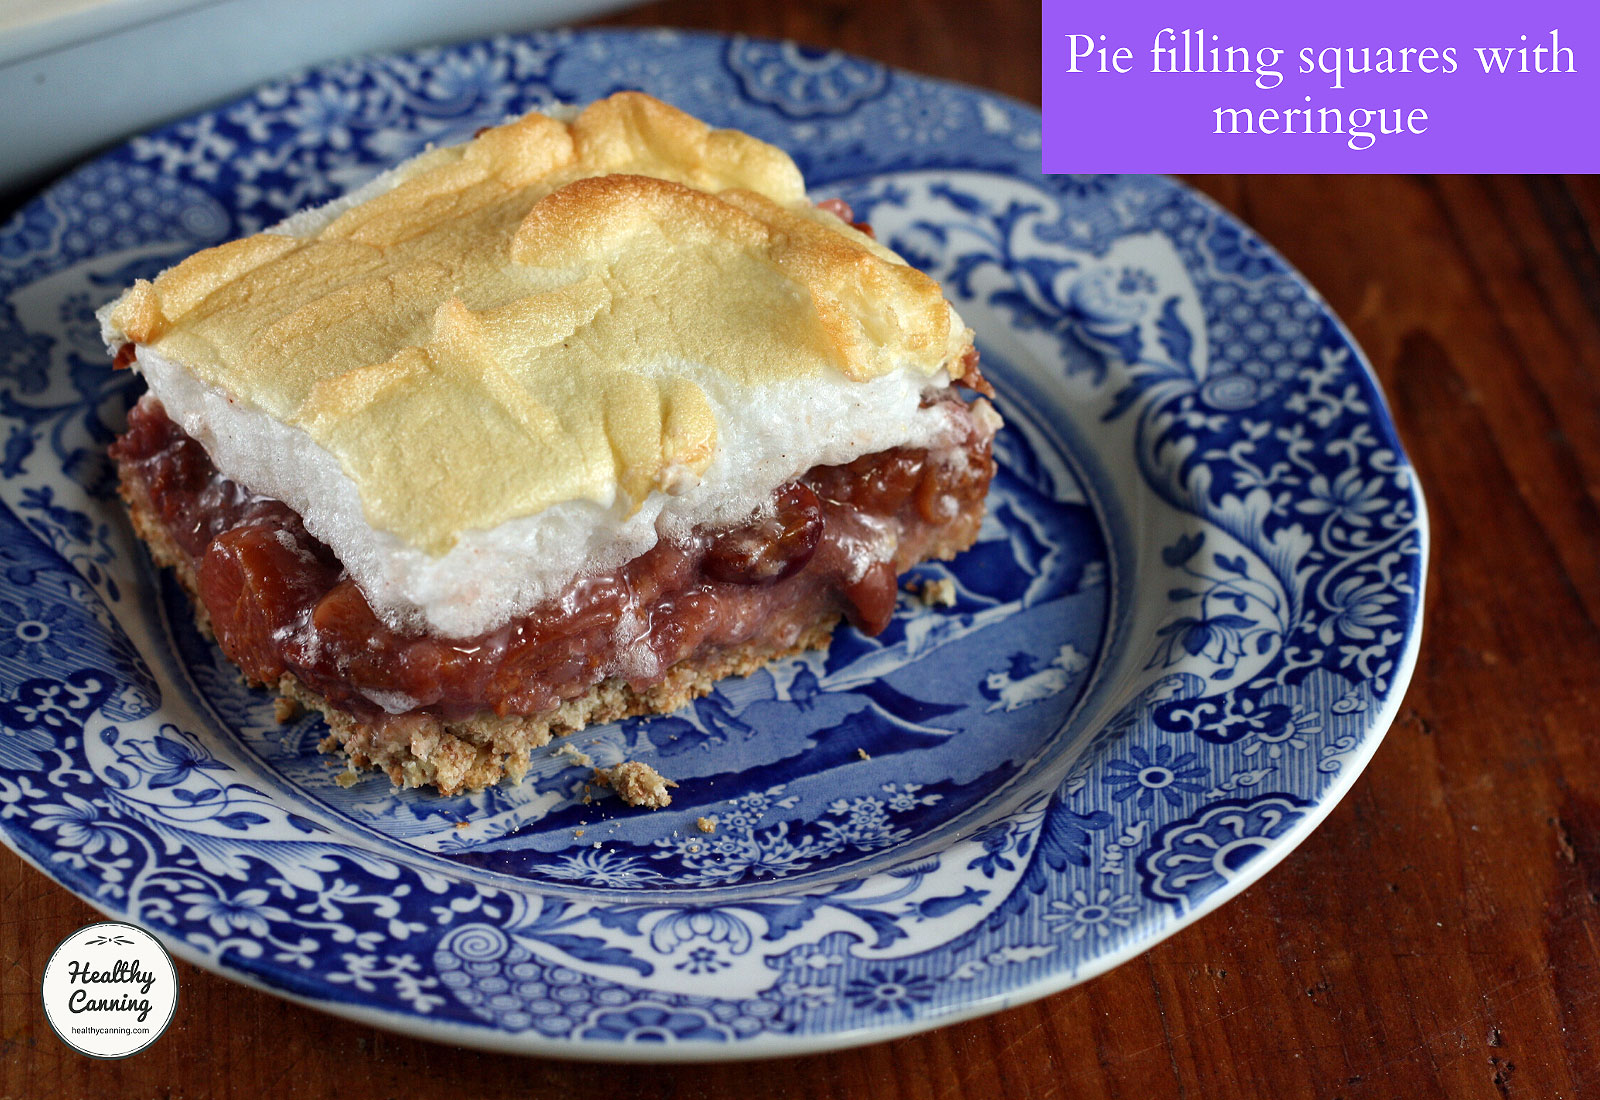 Photo of Pie filling squares with meringue